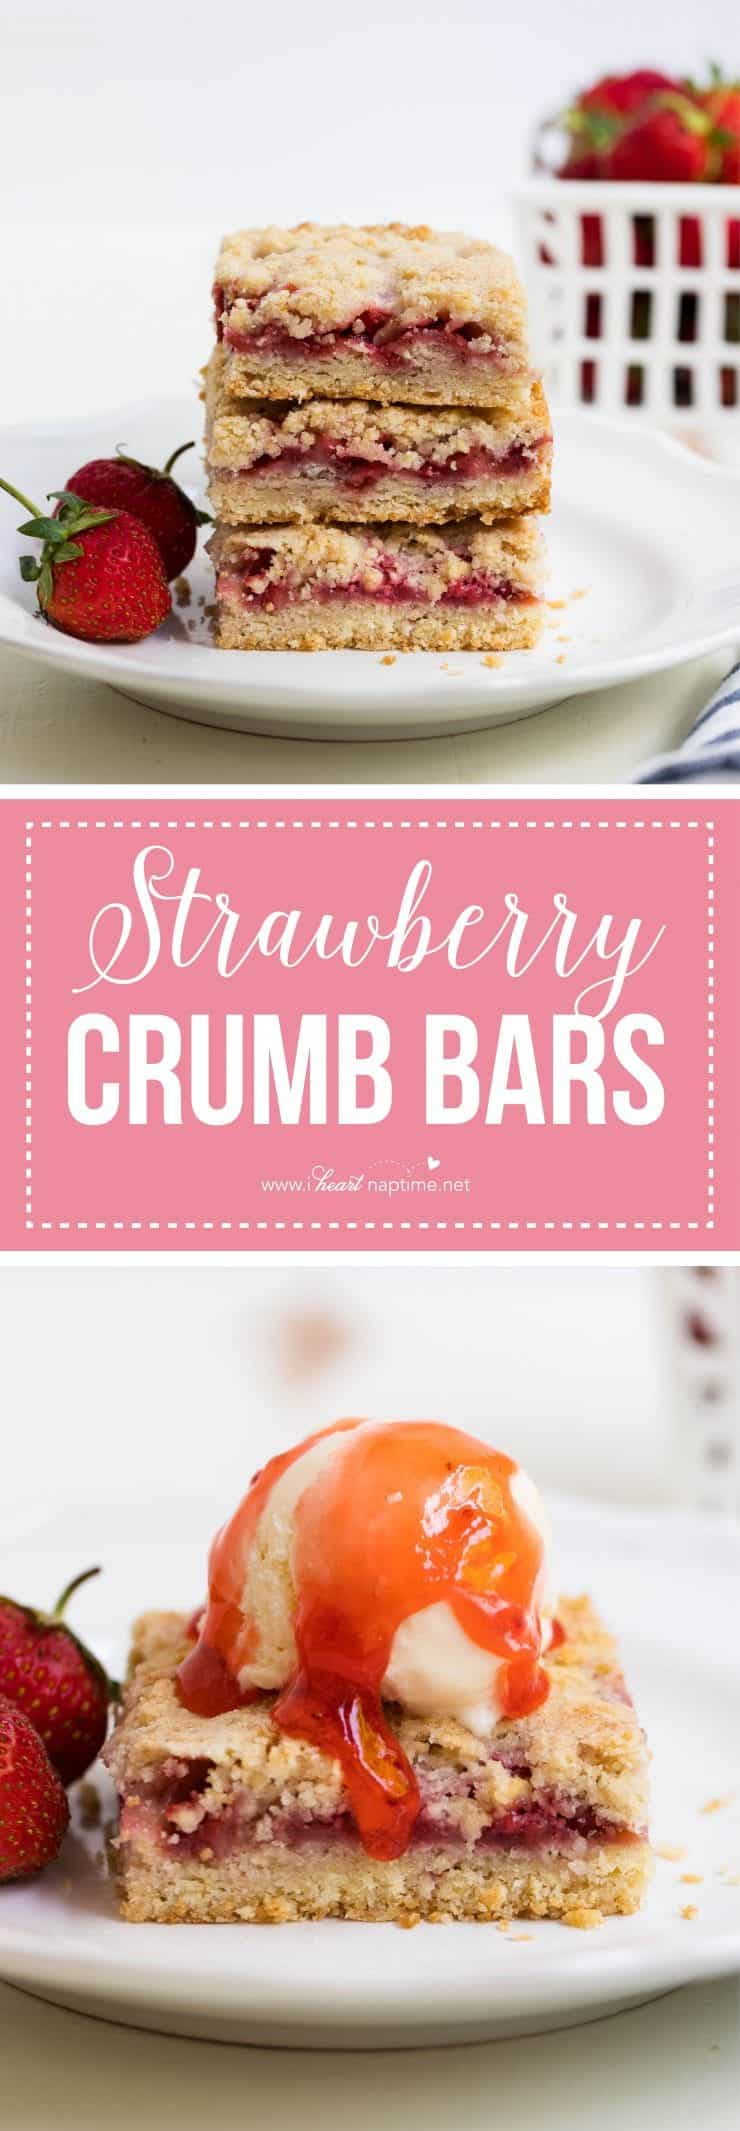 Strawberry crumb bars made with an easy crumb crust, strawberry filling and buttery crumb topping. The perfect summer dessert!